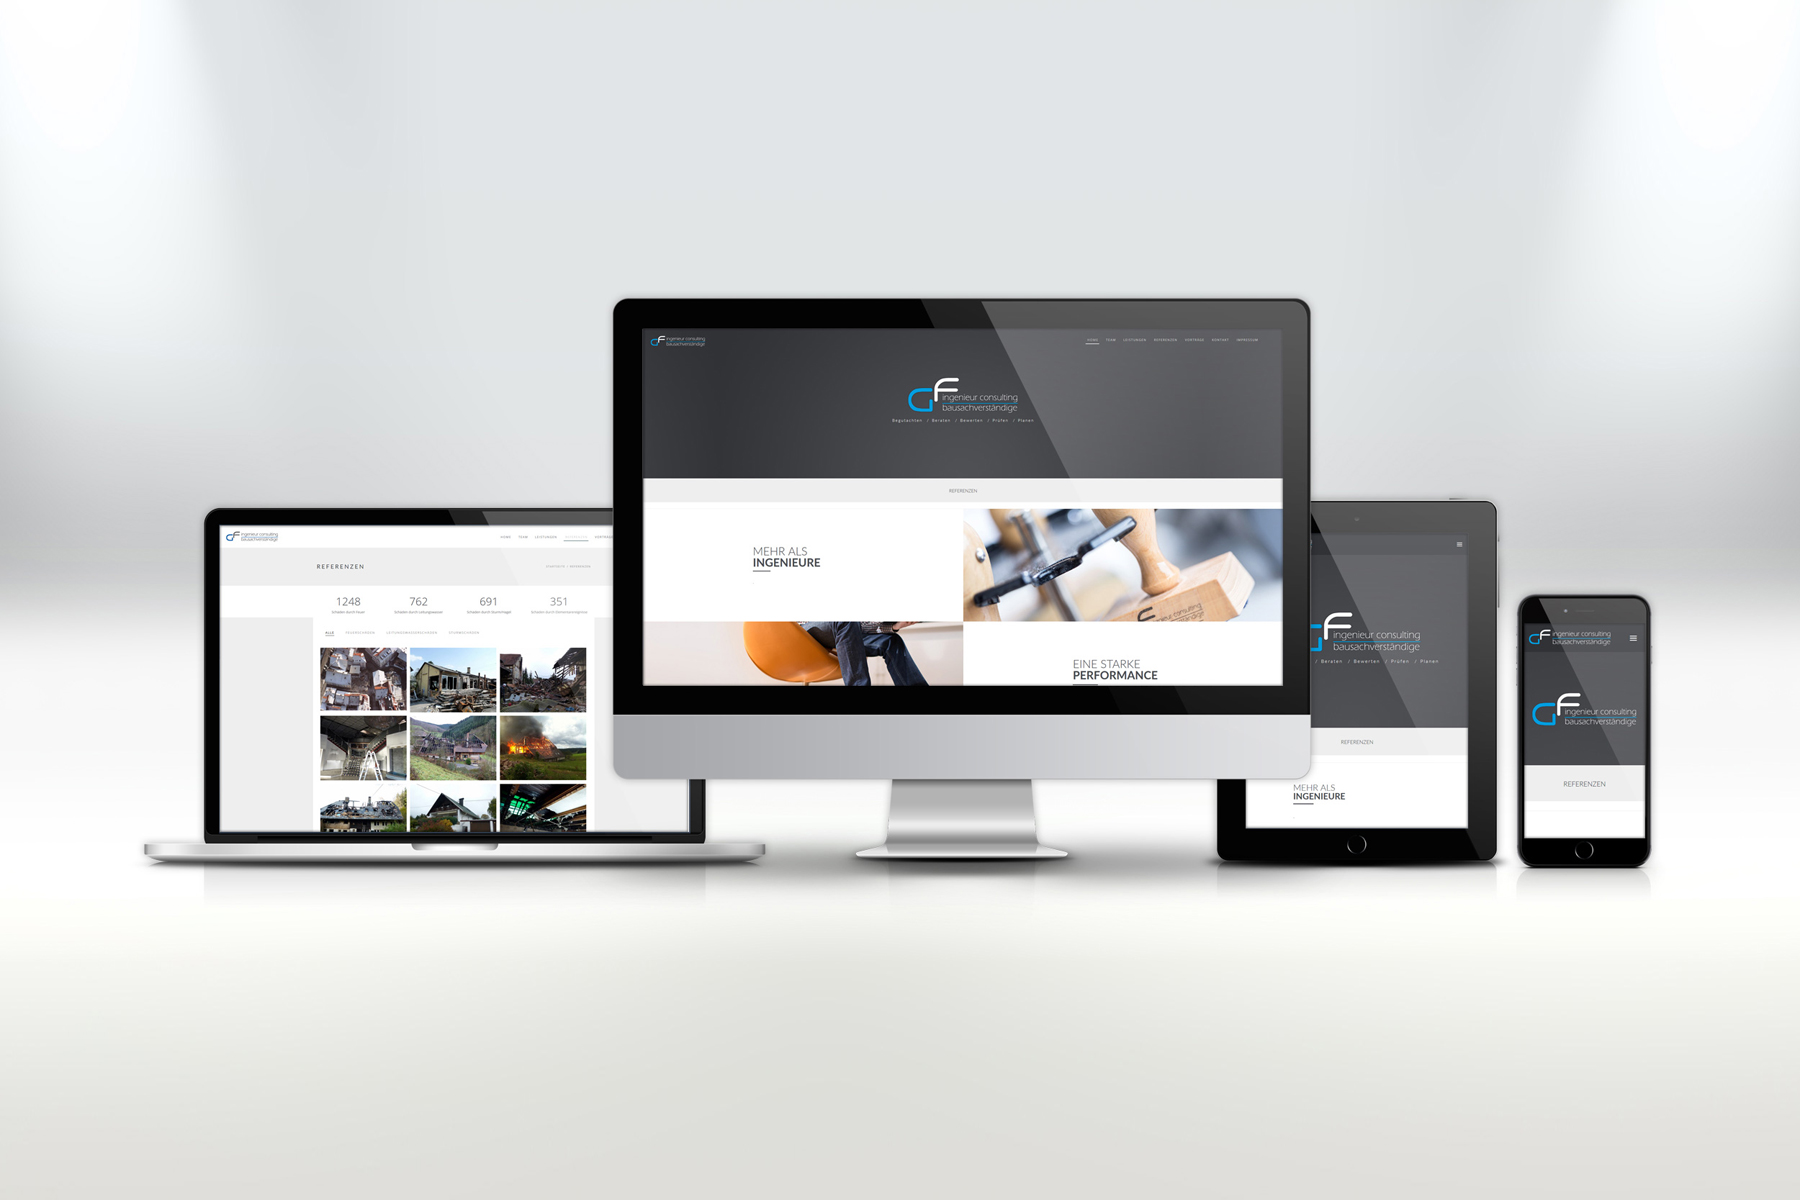 Neue Website - Responsive